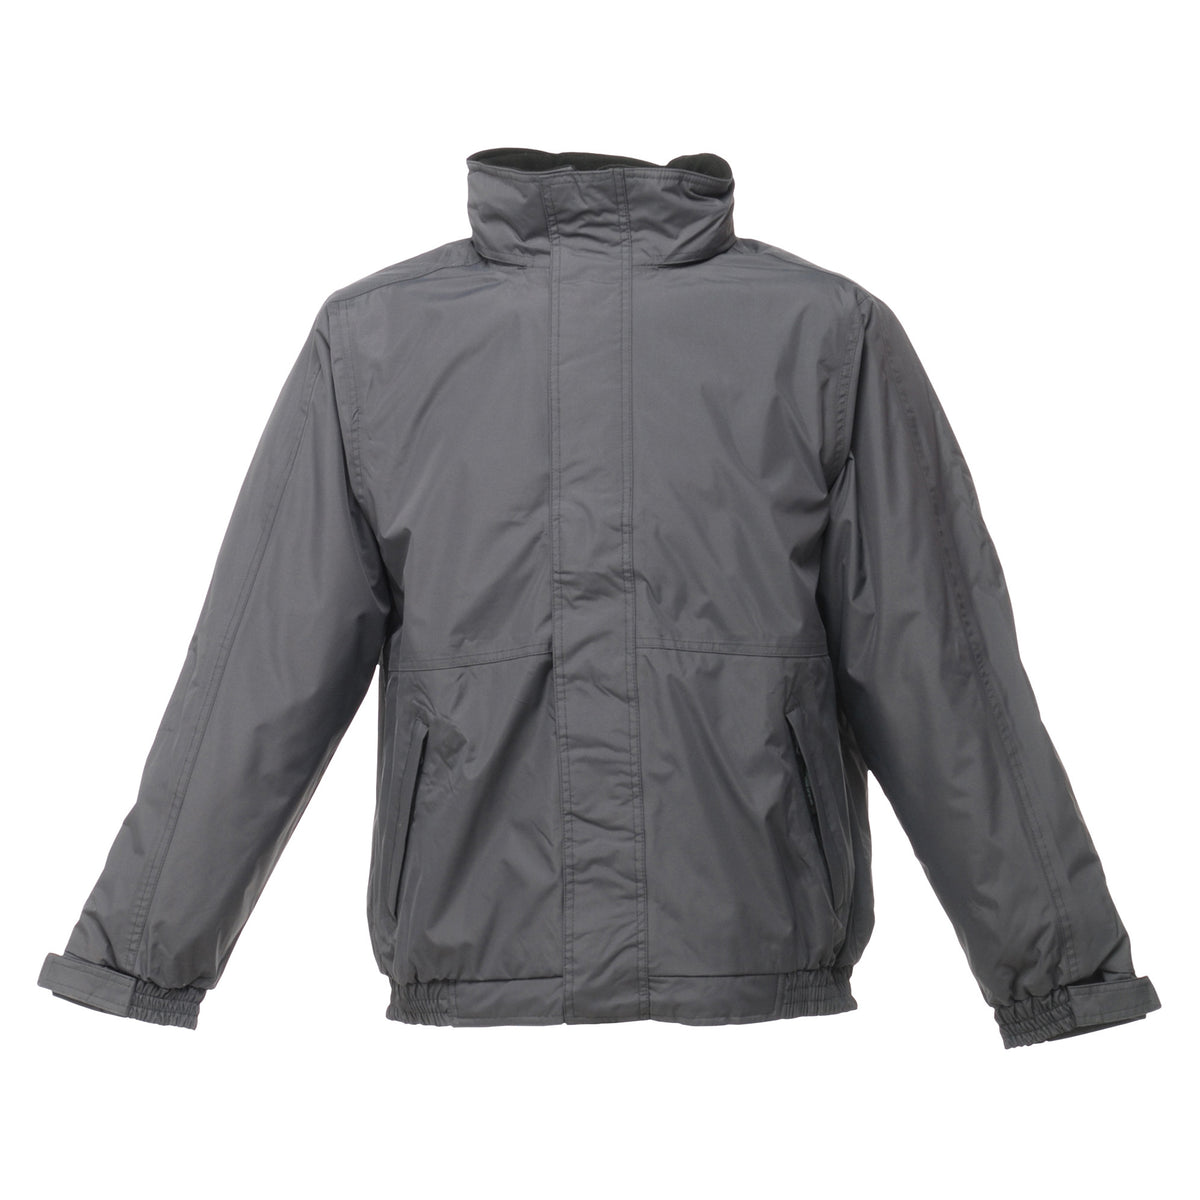 Regatta Dover Jacket - peterdrew.com  - 7